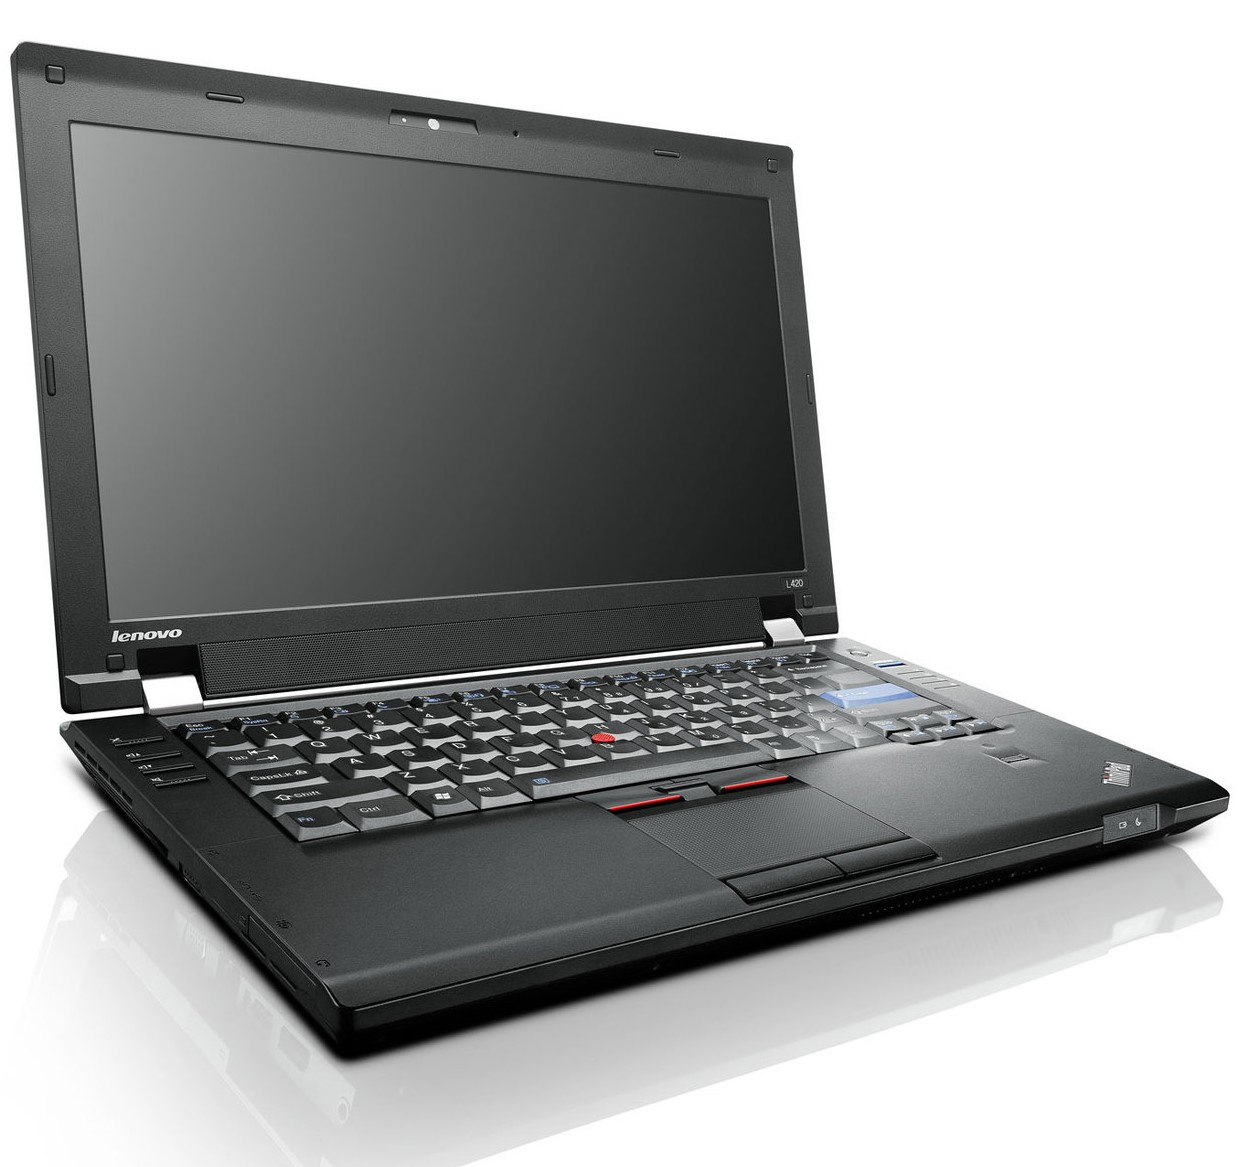 Lenovo Thinkpad L420 / i5 2,5GHz / 4GB / 320GB HDD / WIN 7